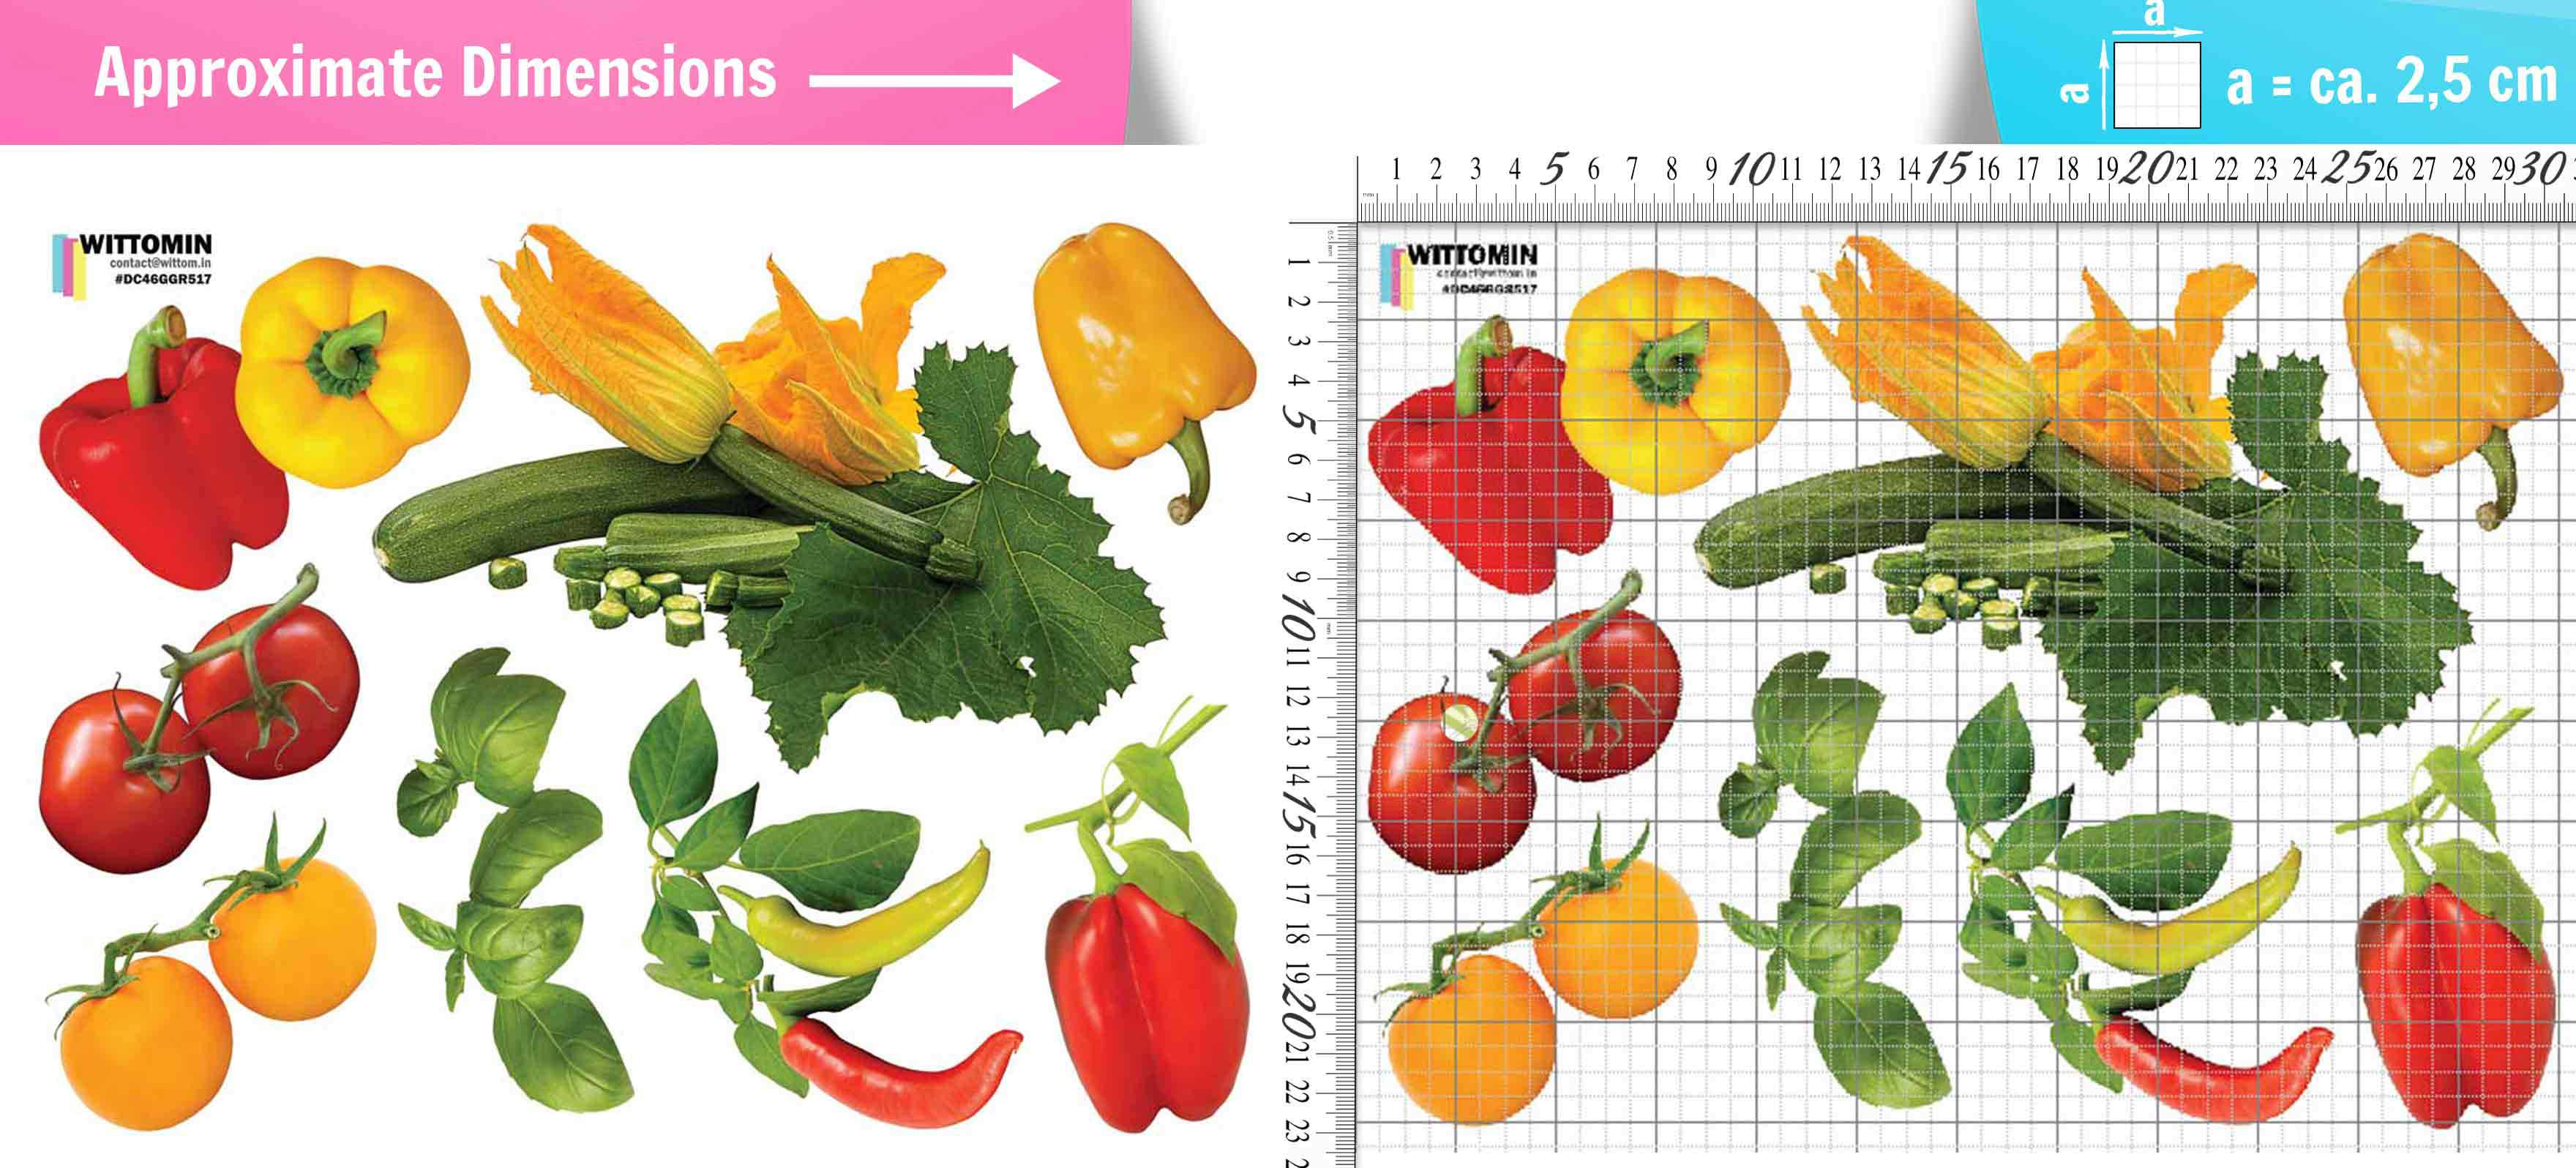 Vegetables - paprika, tomatoes sticker set from Wittomin